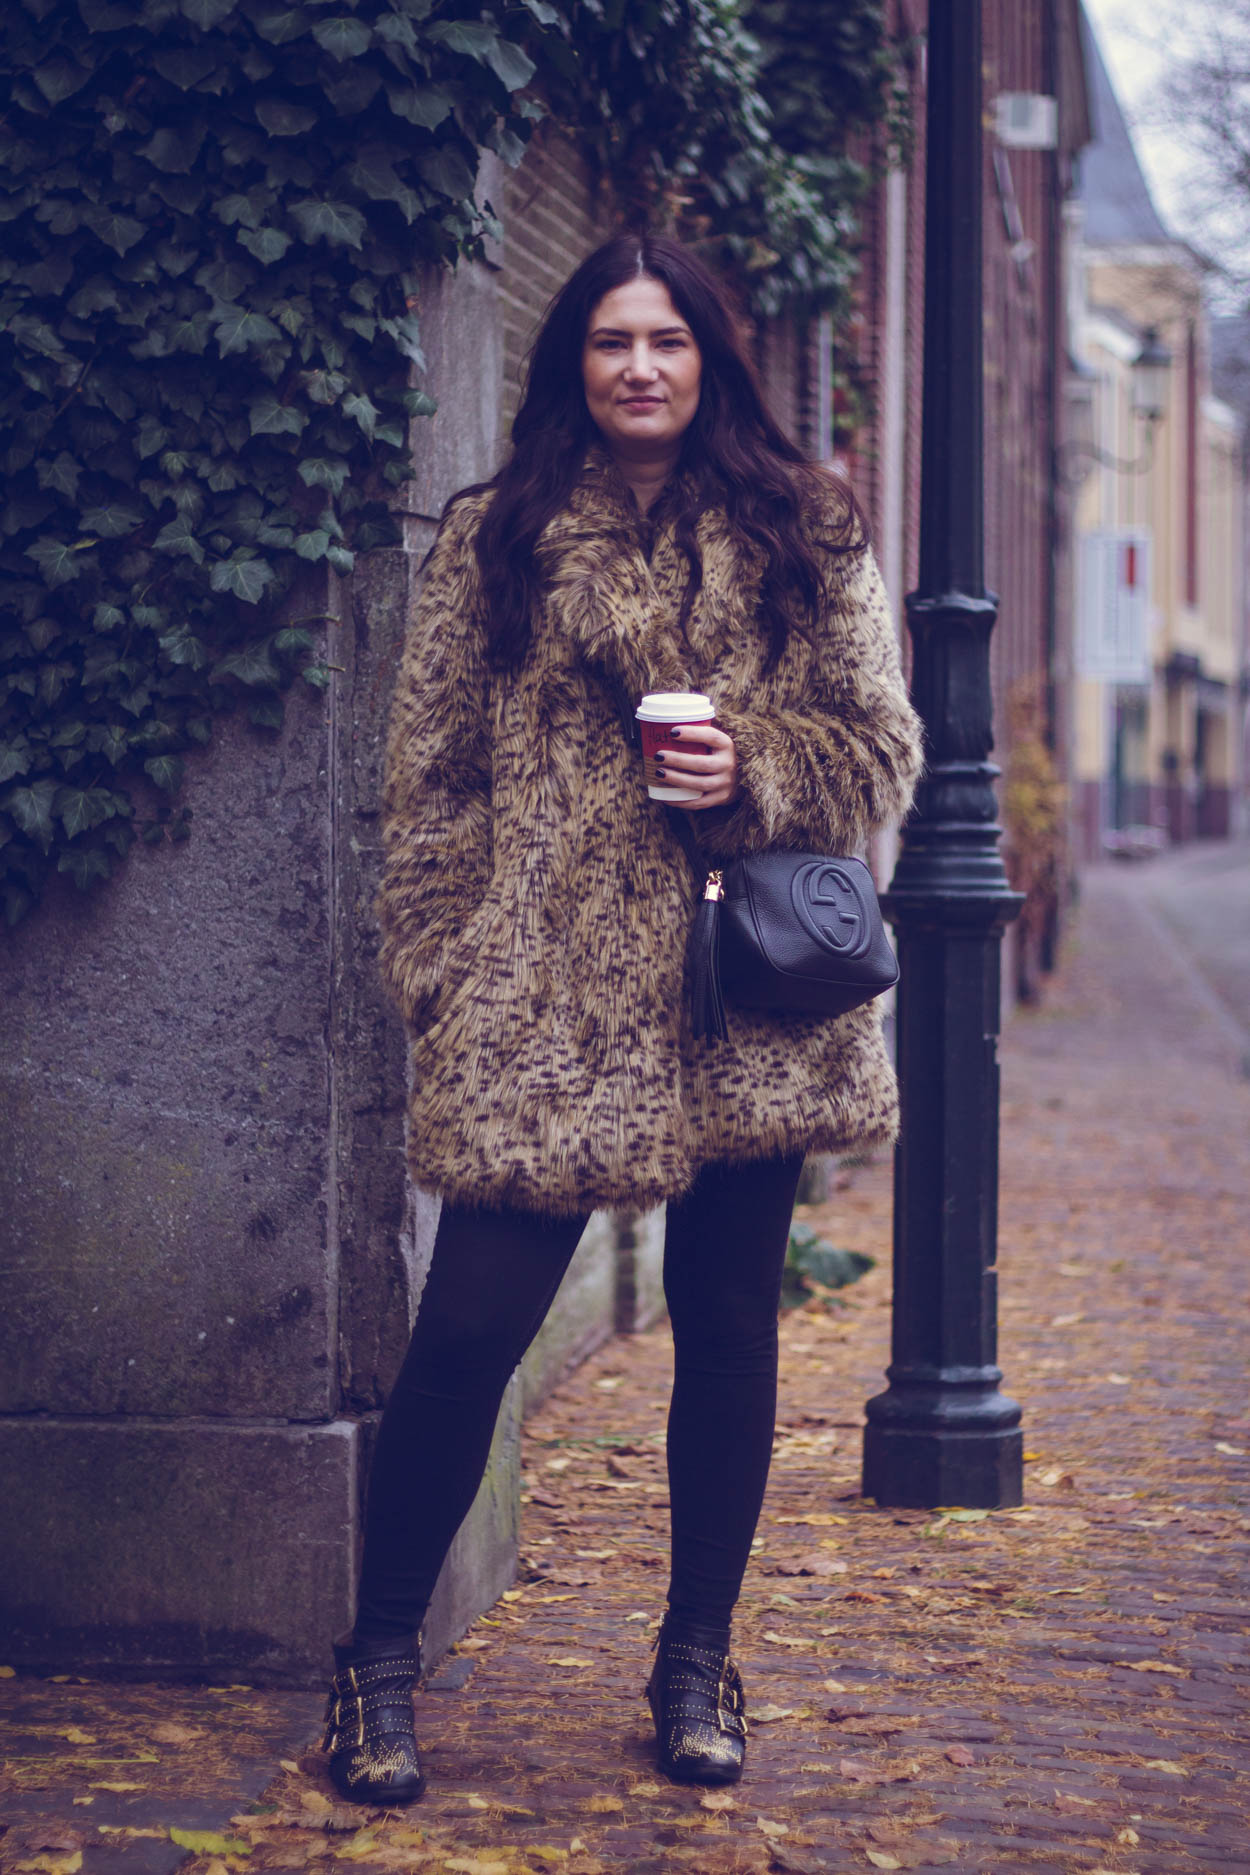 5 FALL COATS YOU WANT TO INCORPORATE IN YOUR CURATED WARDROBE | THECHICITALIAN | Leopard is a neutral which makes the leopard fur coat a classic staple